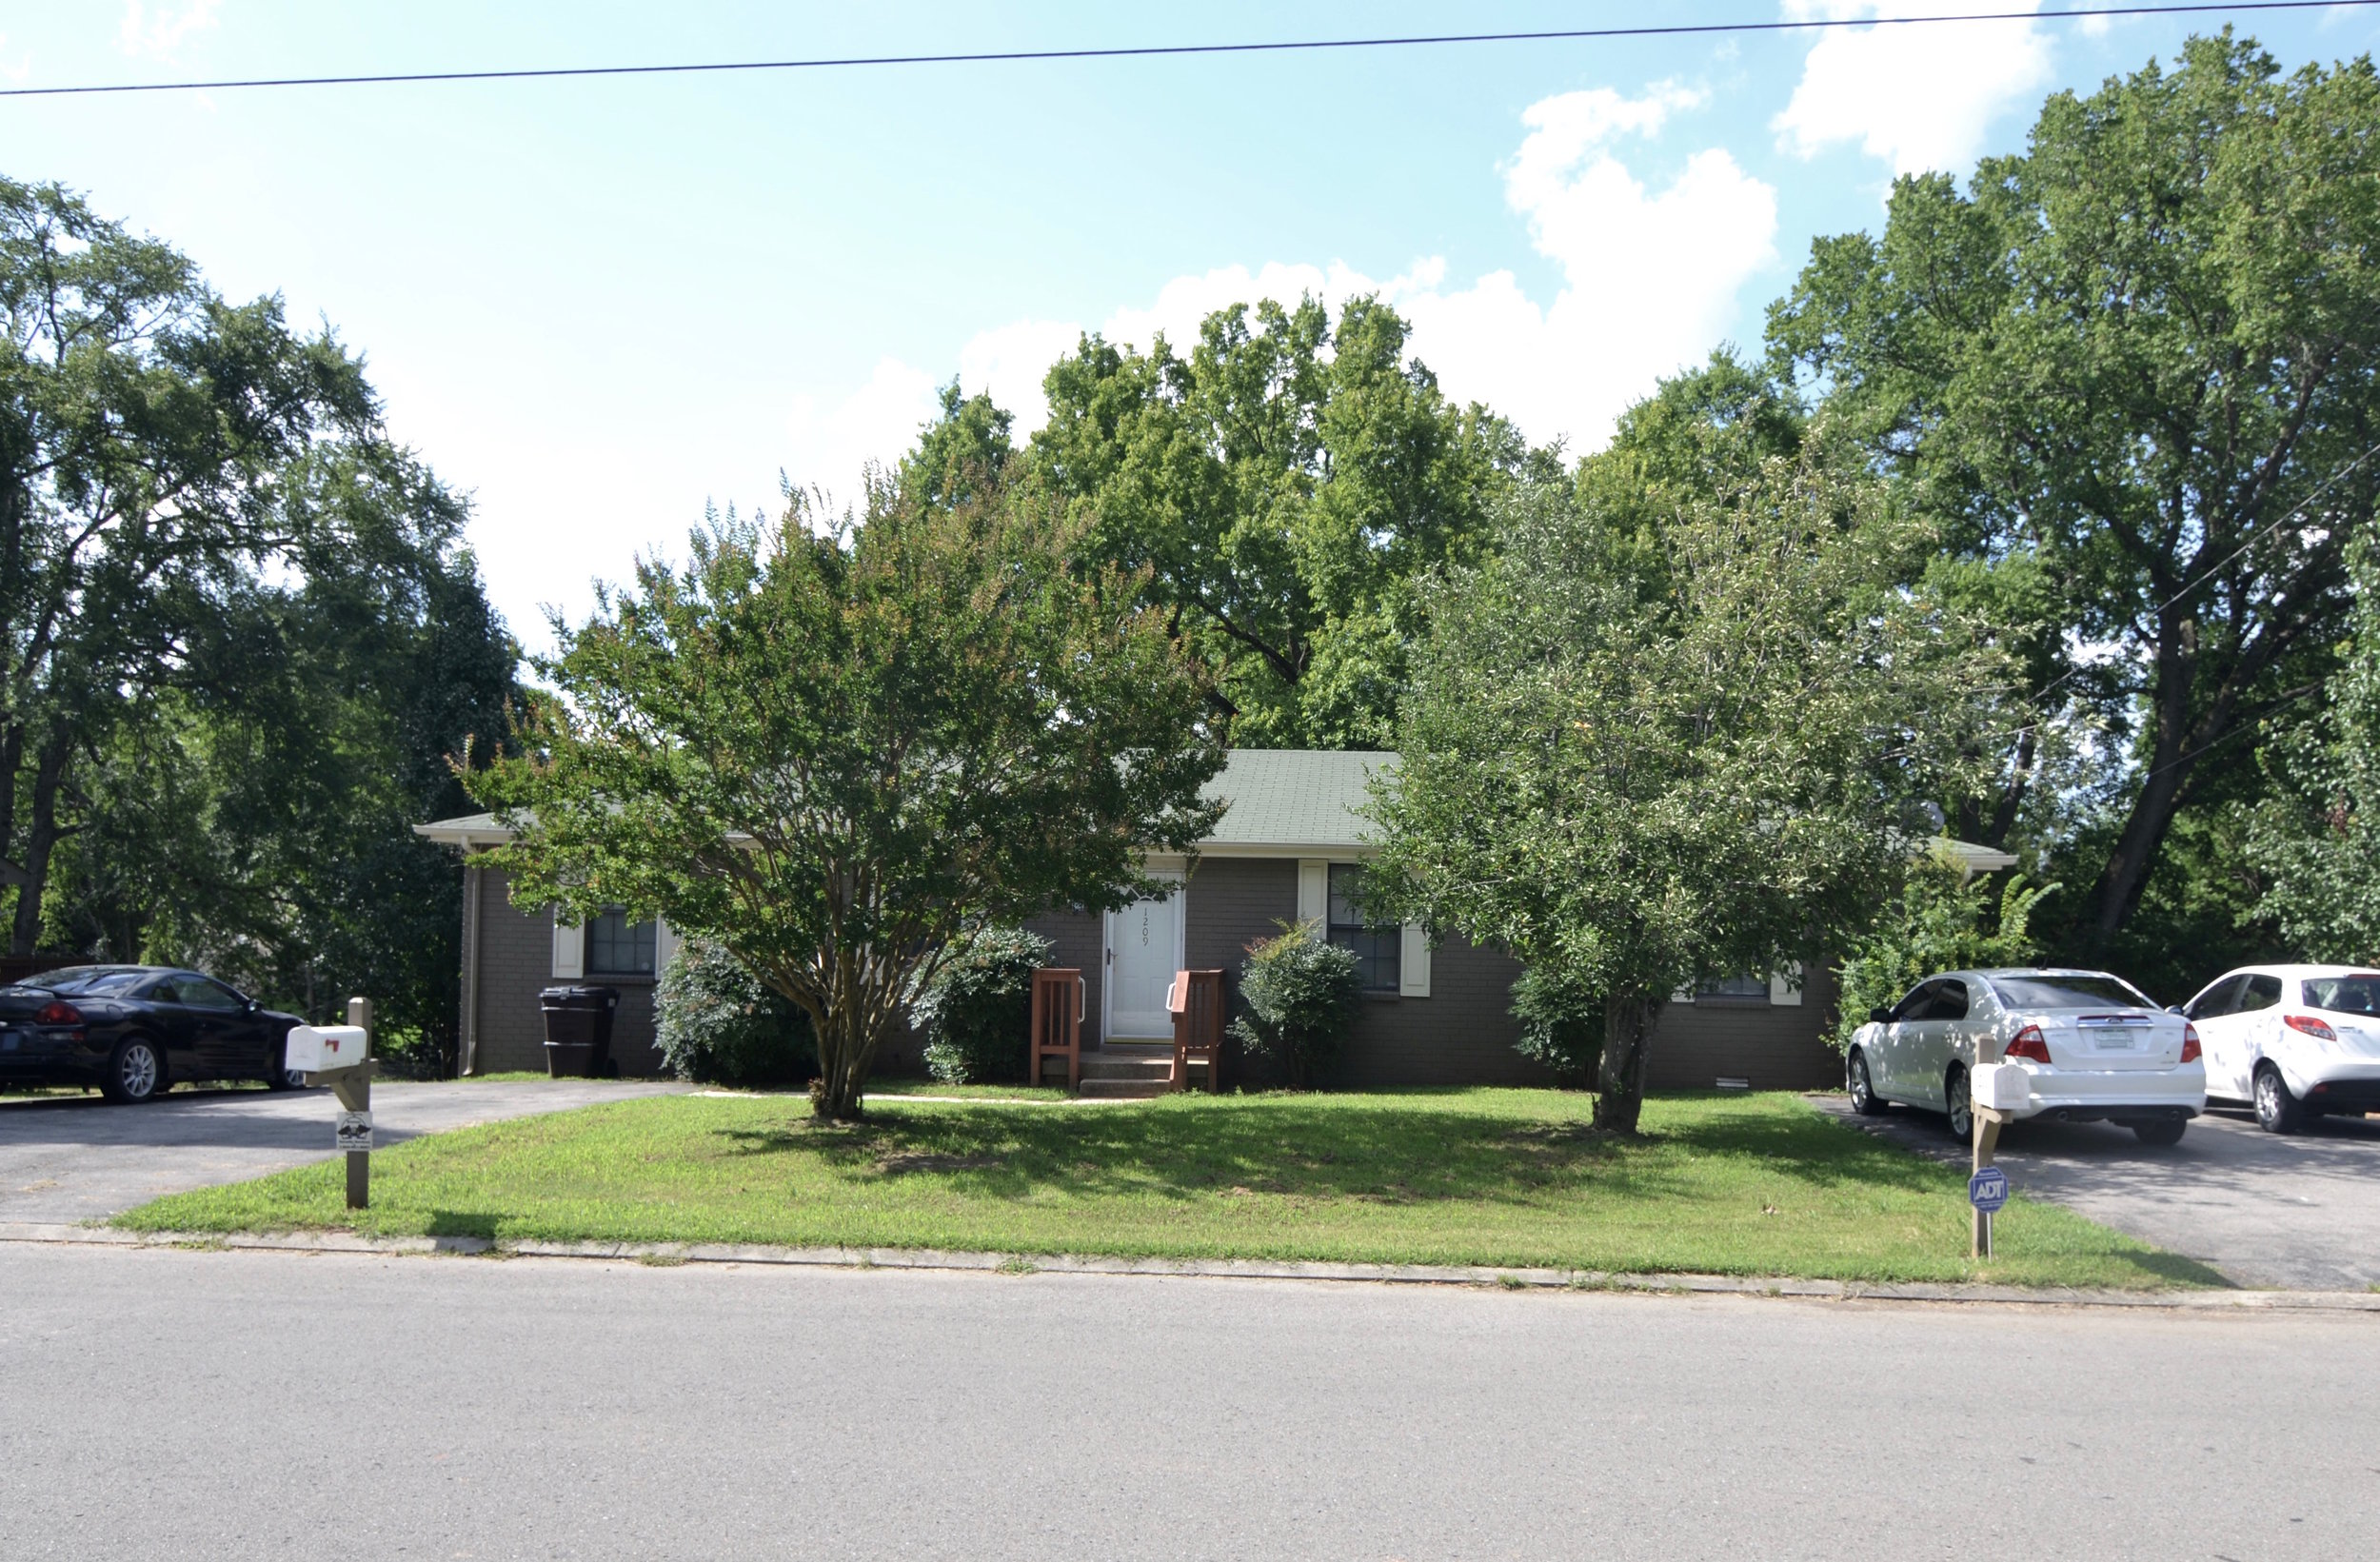 1211 RENTED   1209 RENTED MADISON: 1209/11 Sioux Terrace: Duplex: 2 Br, 1 Ba 100% Remodel Just Completed